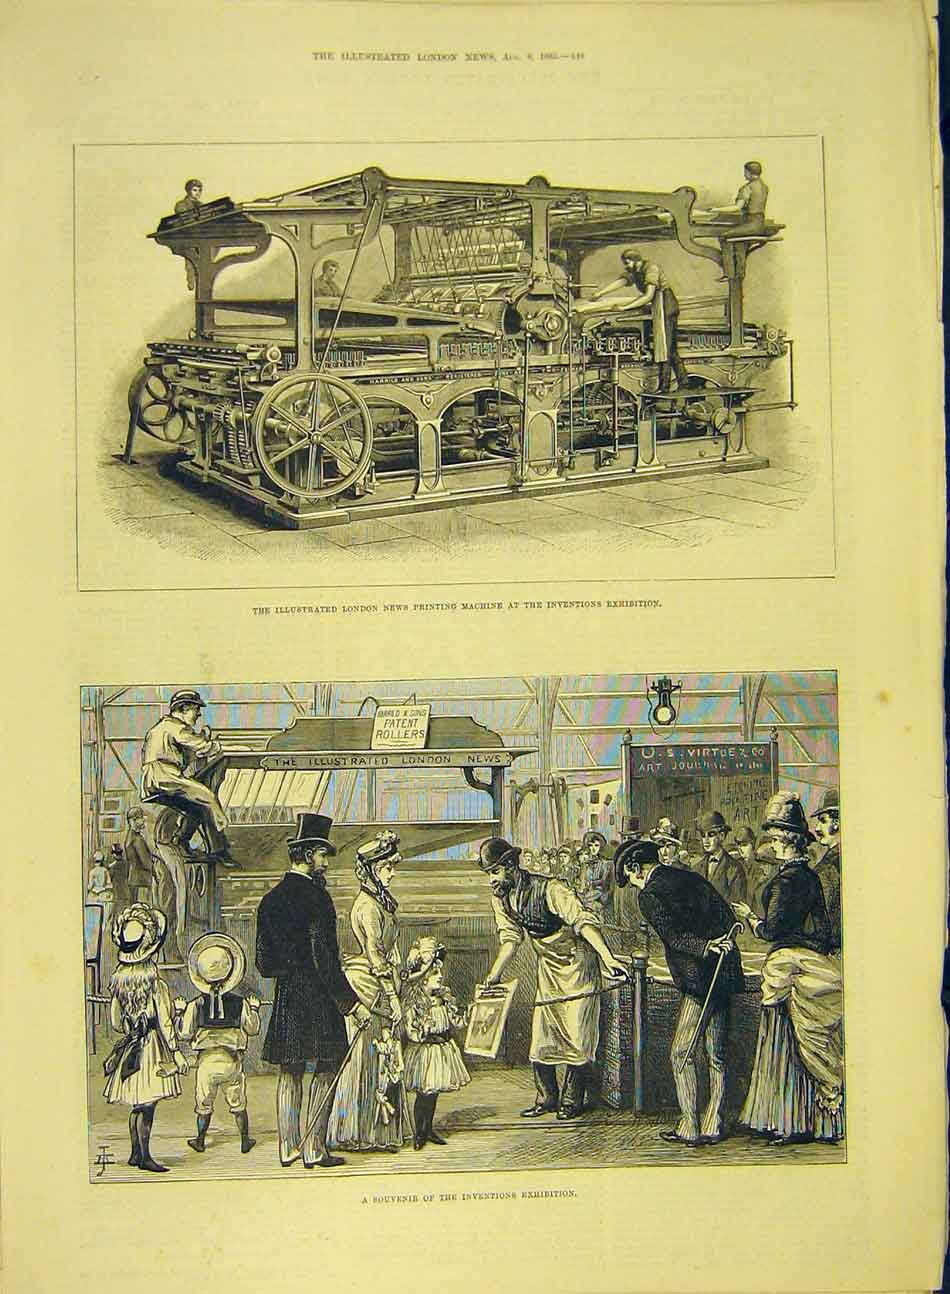 Print 1885 London News Ing Machine Invention Souvenir 617991 Old Original